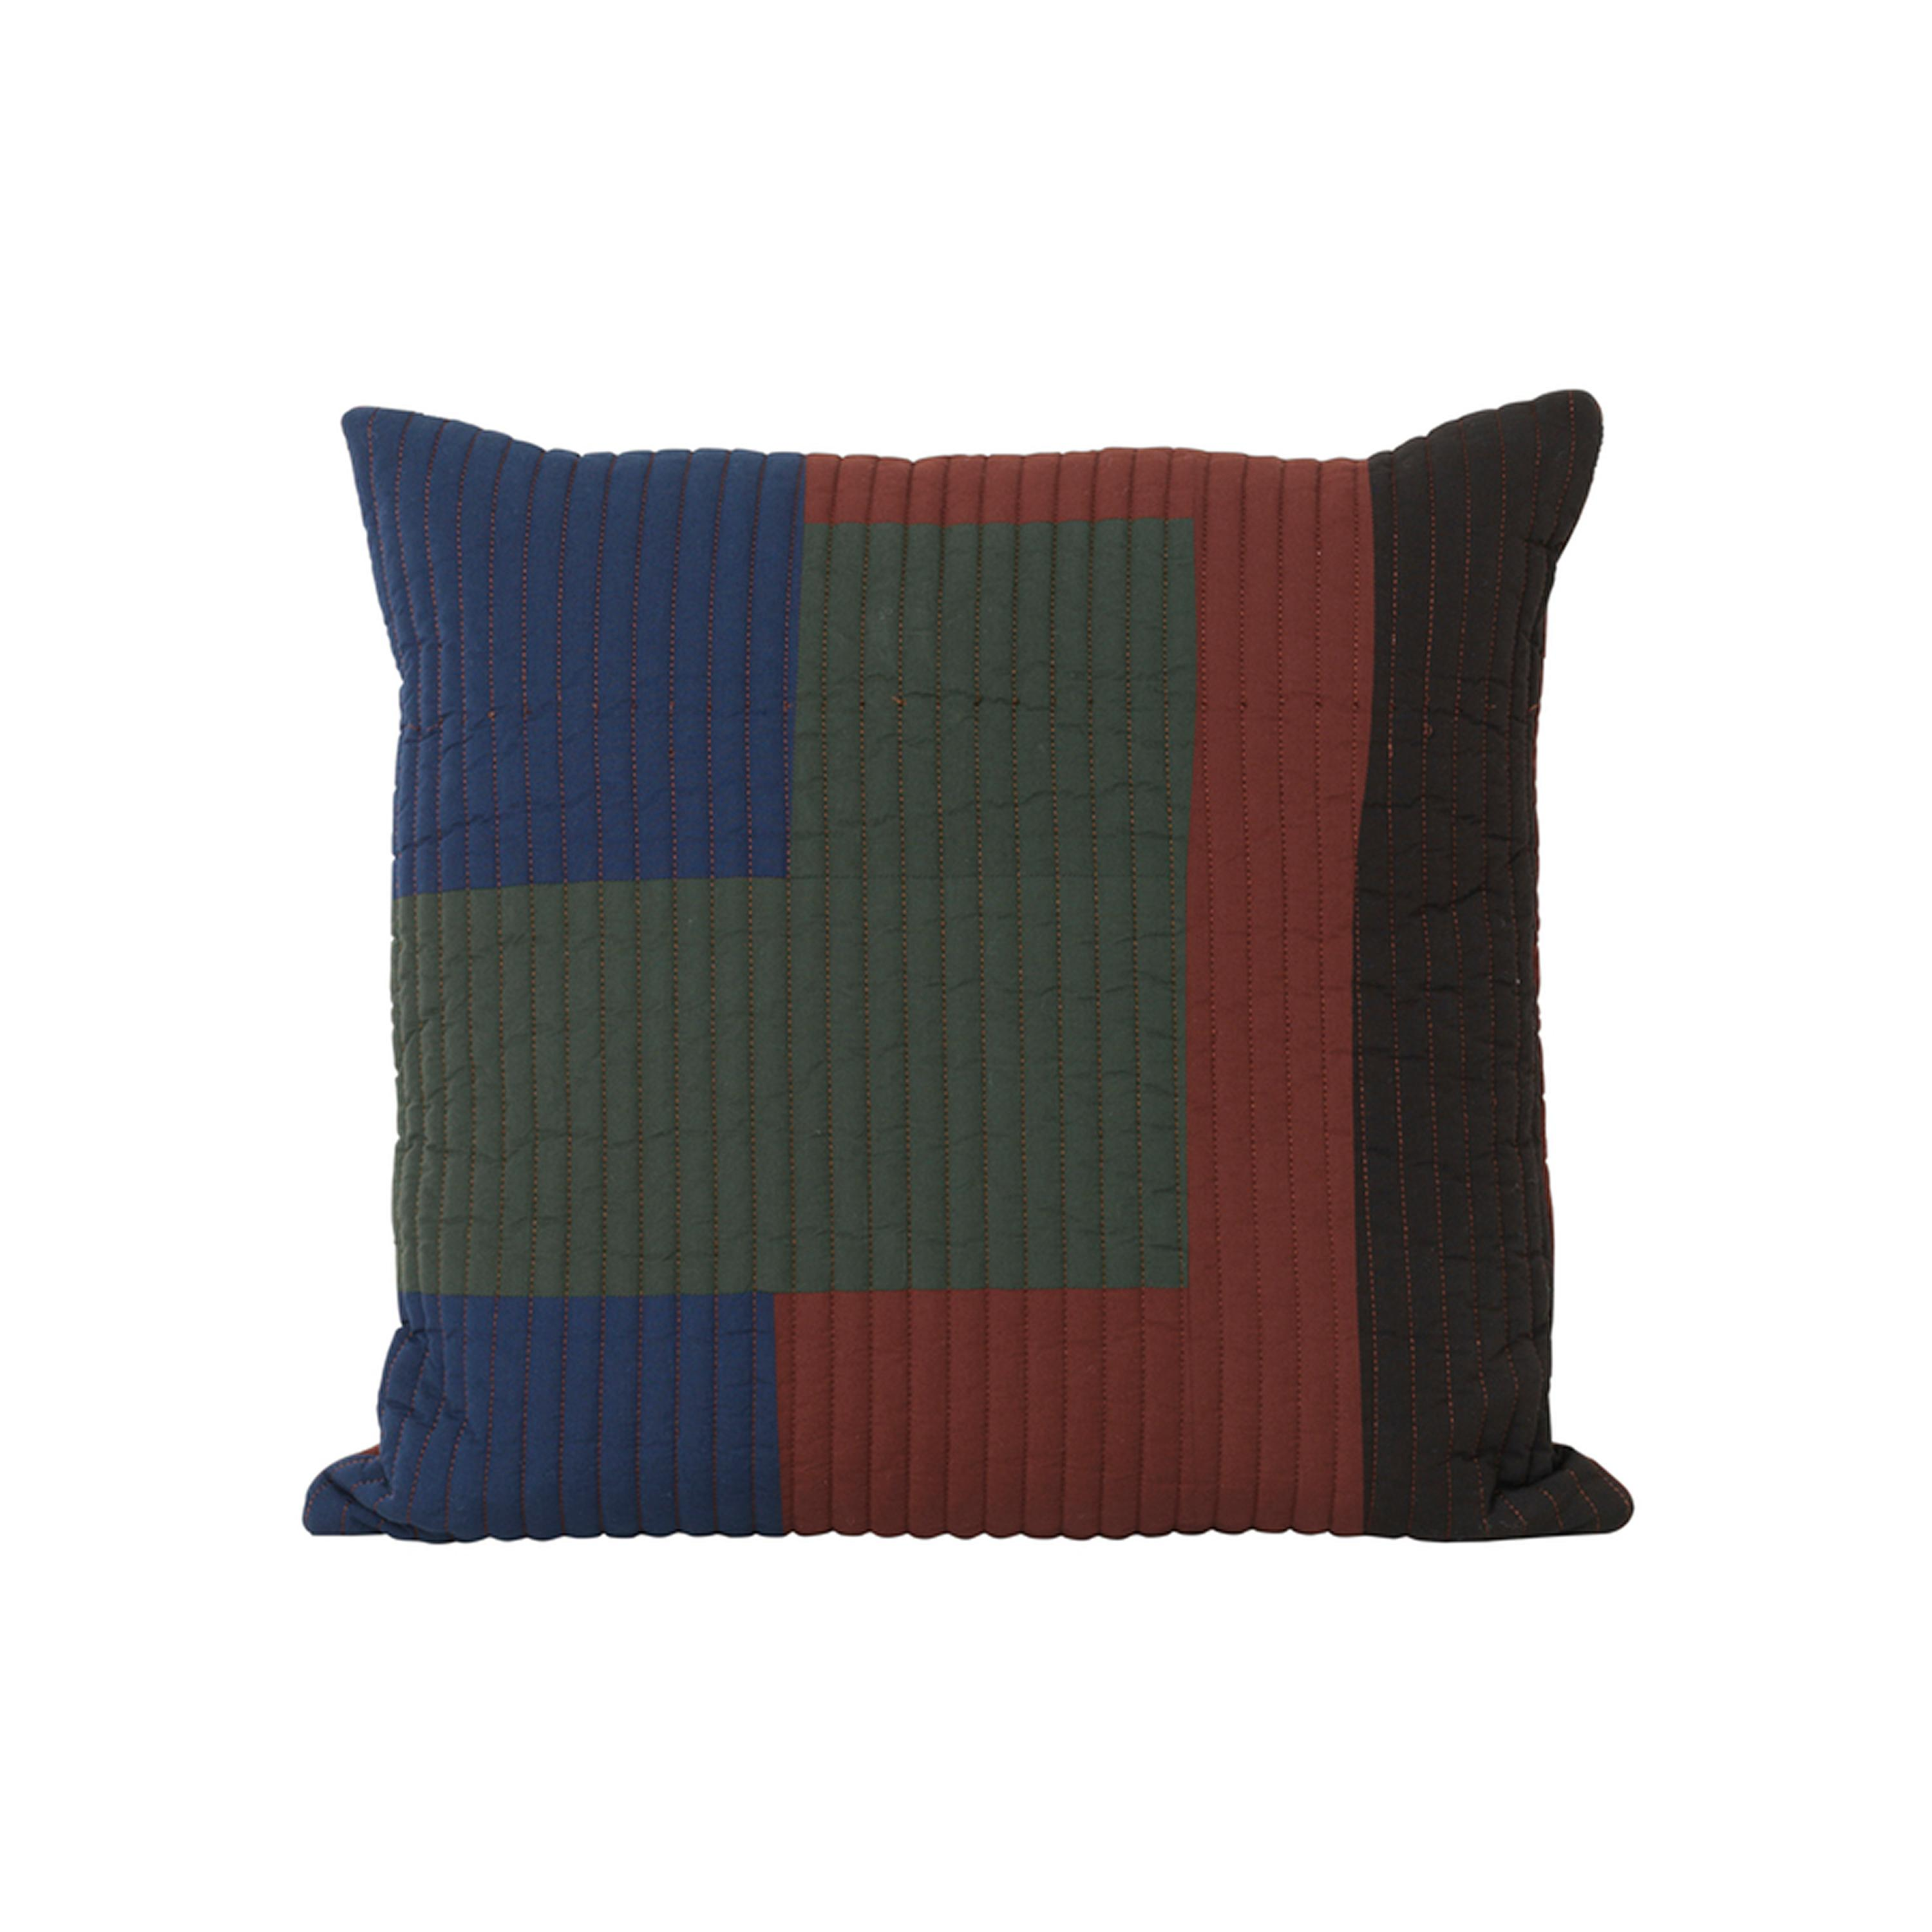 Shay Patchwork Quilt Cushion   50 X 50